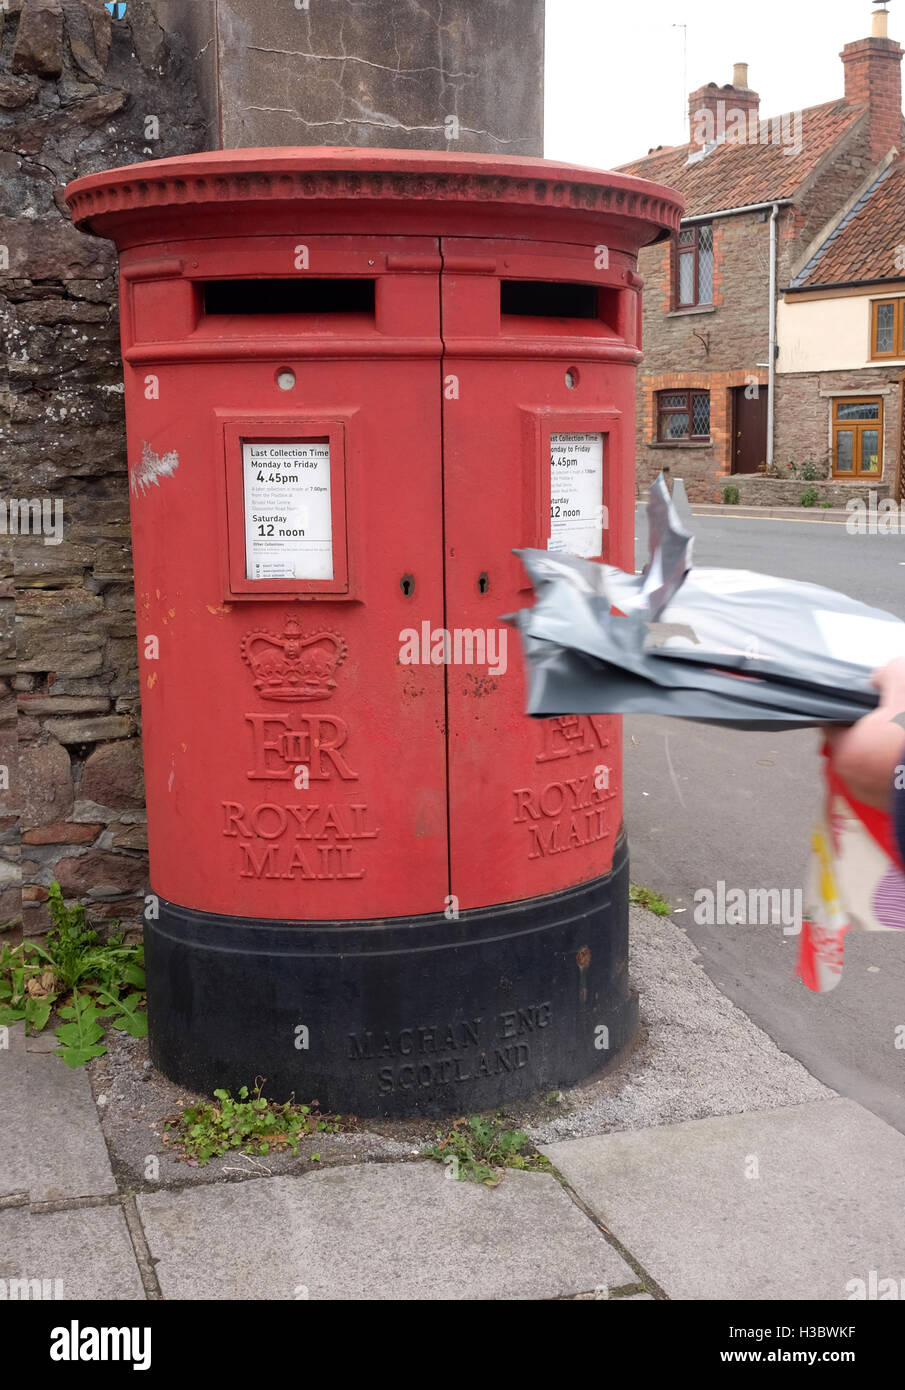 4th October 2016, Large red letter box with two opening in Winterbourne, South Gloucestershire. - Stock Image